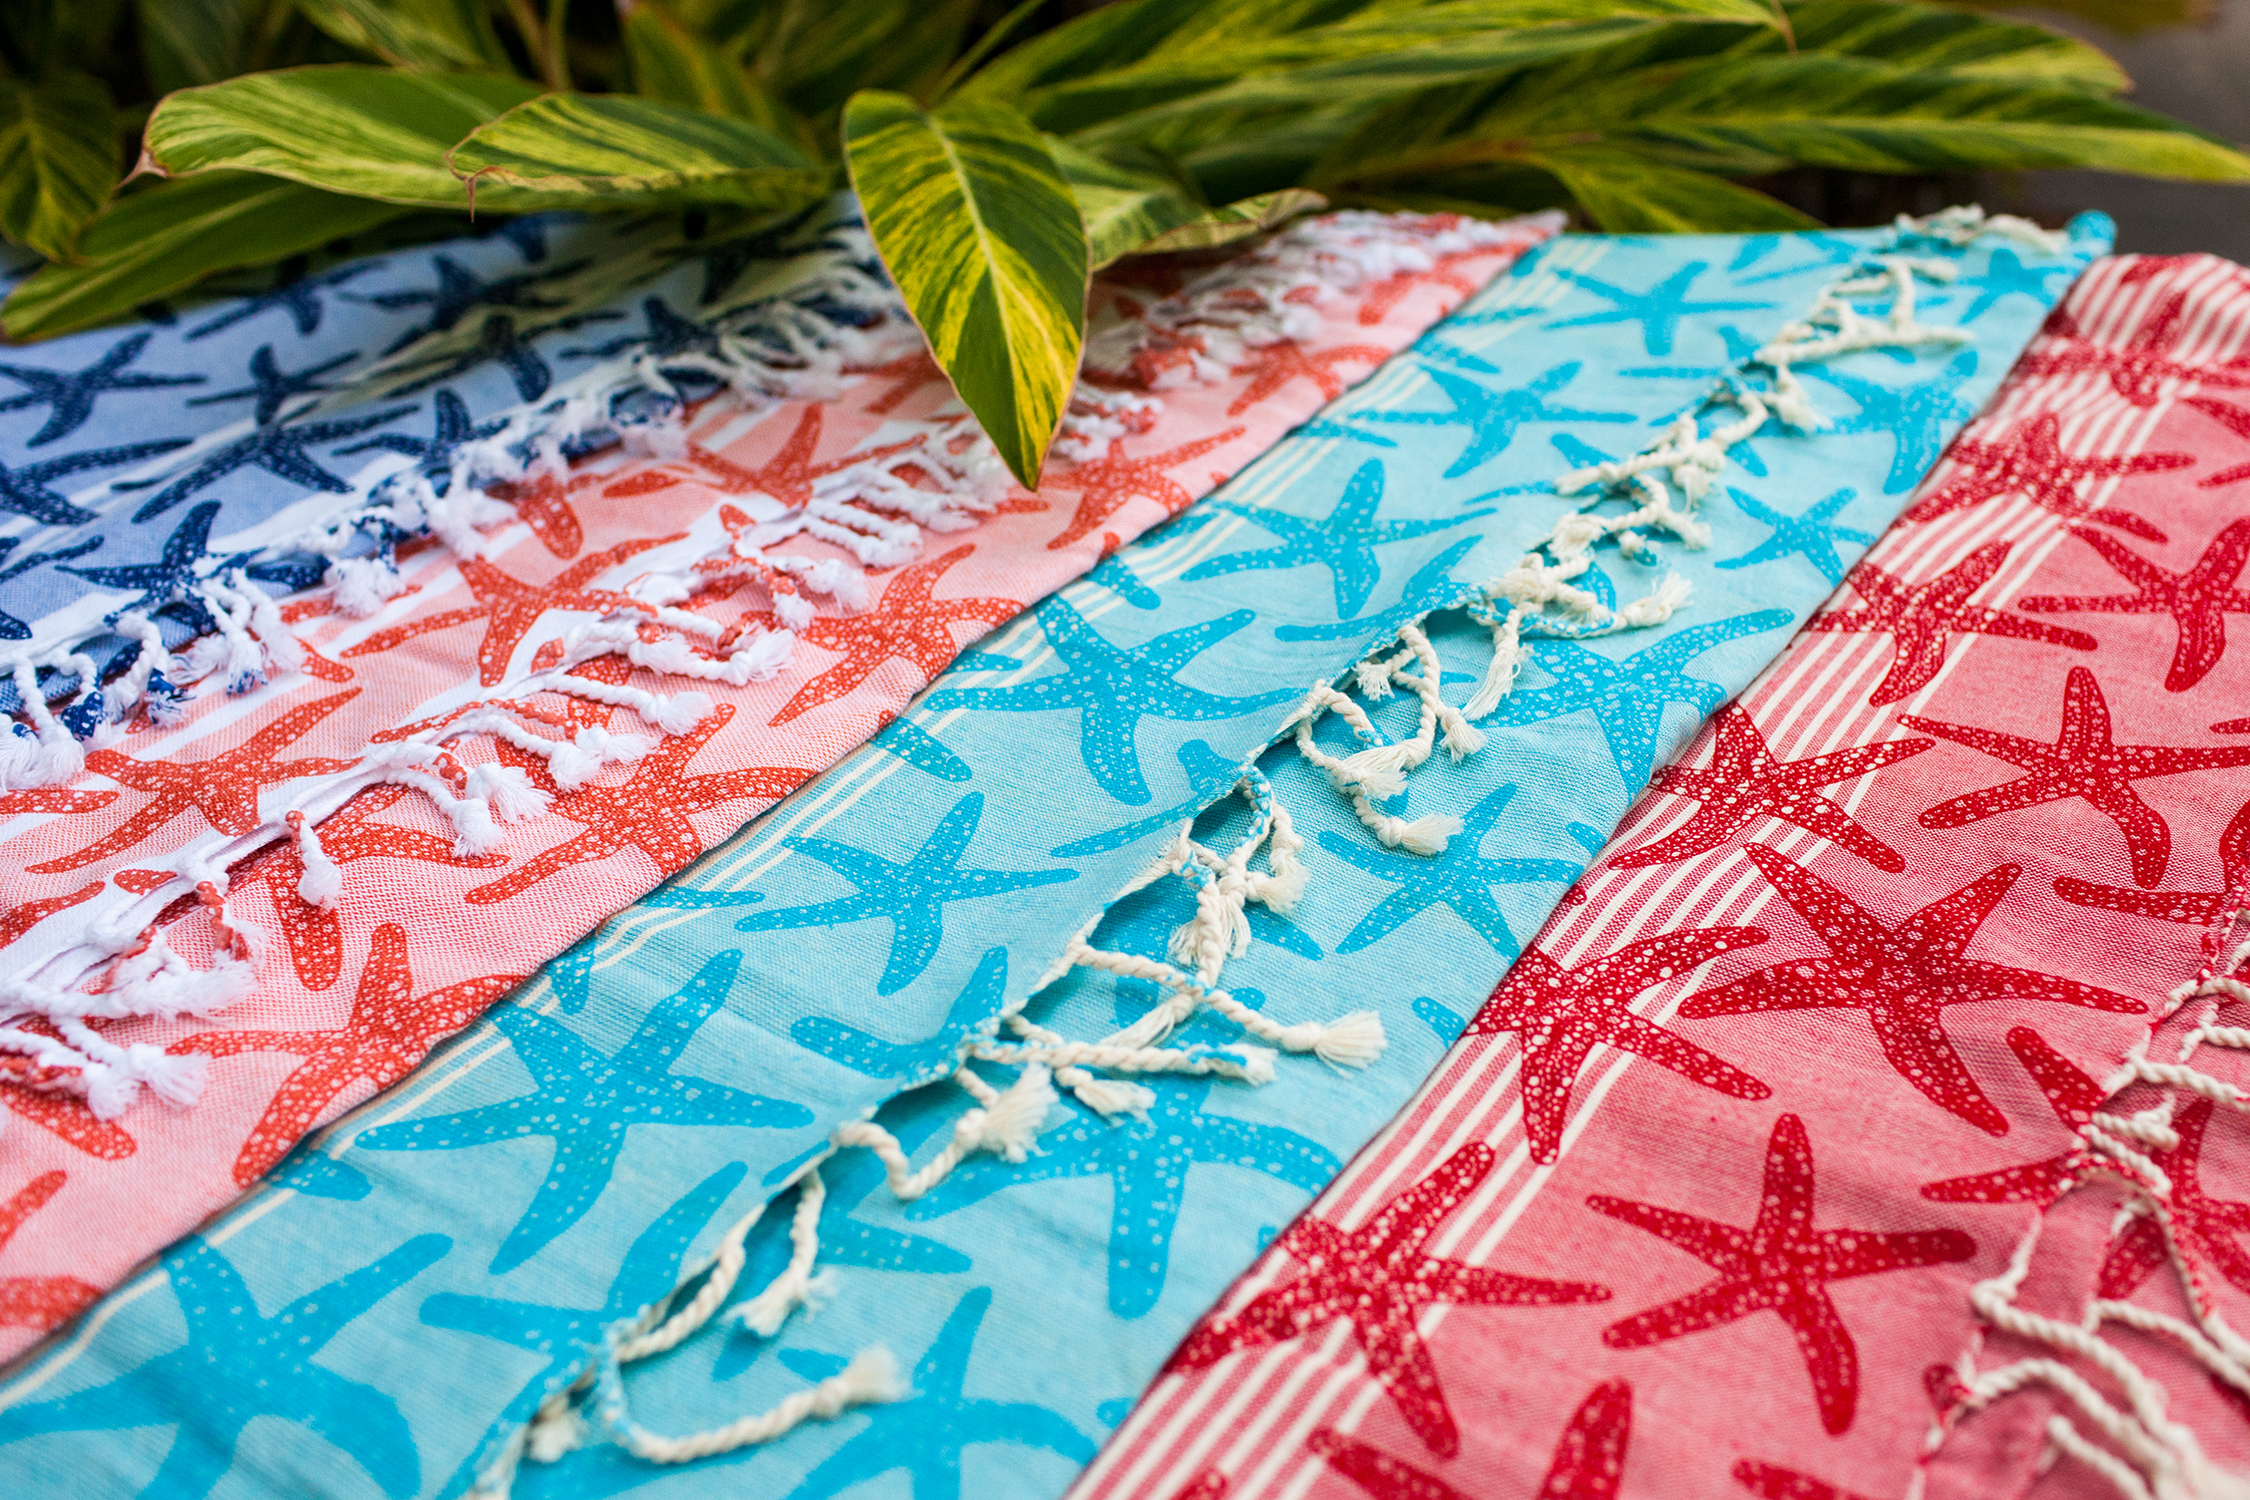 fouta-turkish-towels-polkastar-print-bahamahandprints-nassau-bahamas.jpg